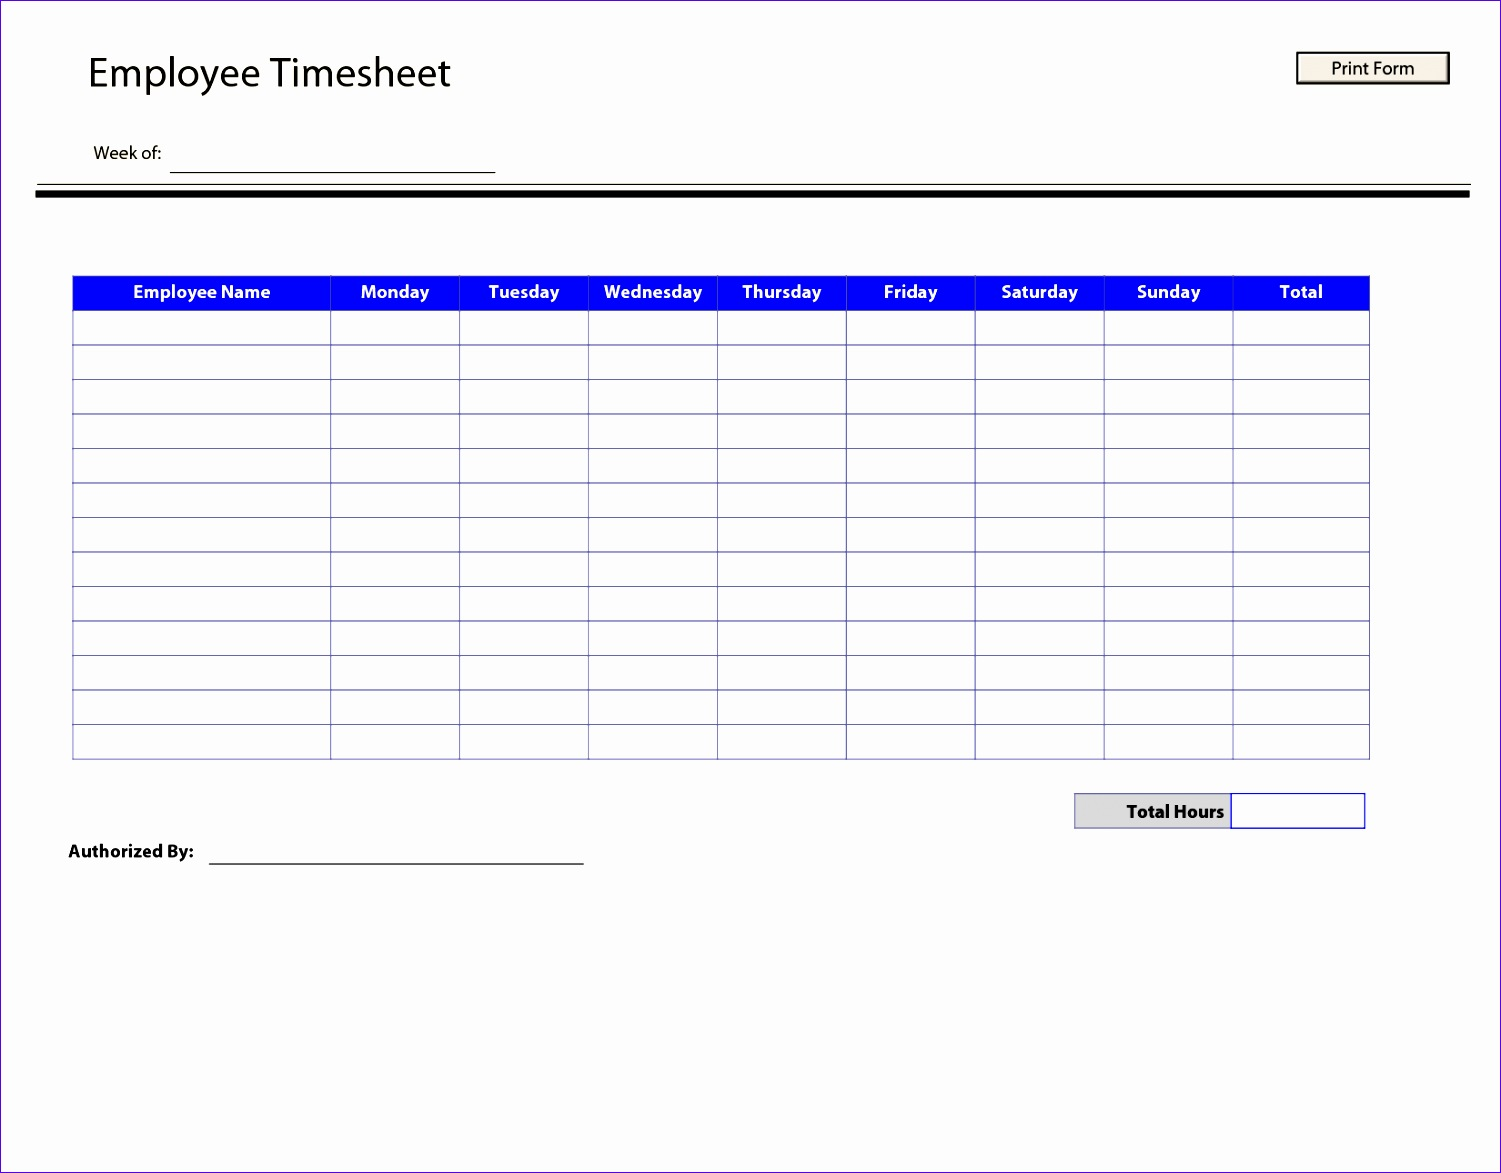 Free Excel Dashboard Templates 2010 Joyjh Fresh Blank Employee Timesheet Template